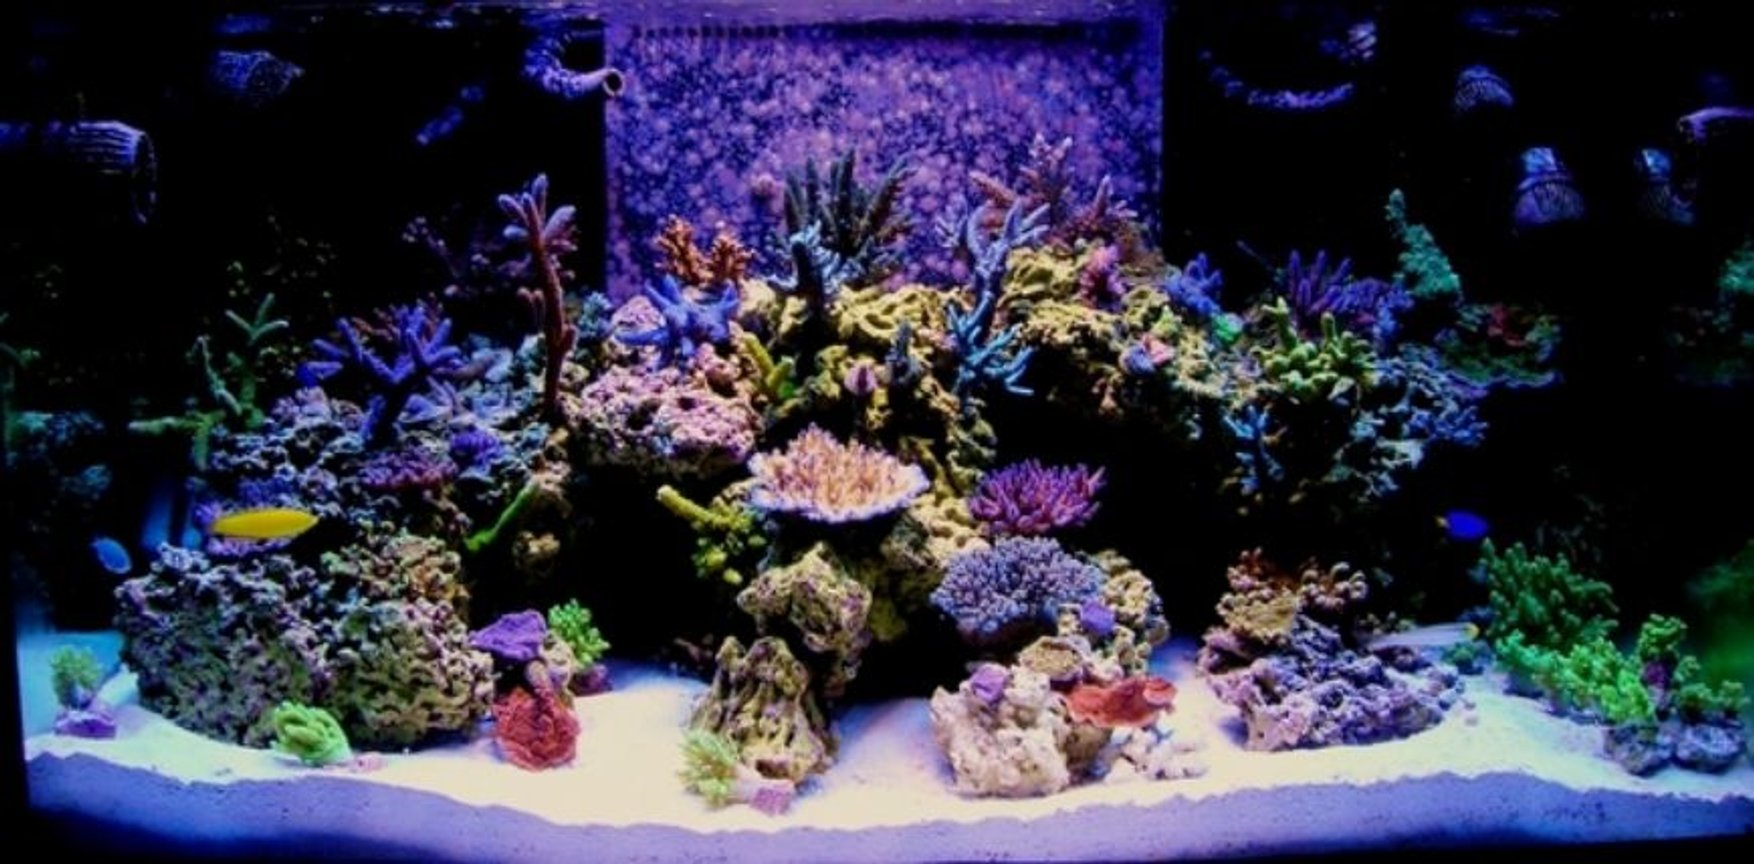 fish tank picture - 120g tech tank sps,and rare green Nepthea ,ans some Sinularia ,400w Reeflux 10k ,2 250w Radium 20k on the sides ,3 Uri vho super actnics,1 actinic white vho Uri,2 fiji purple t5 ,Octo Extreme 250 skimmer,Geo 618 cal/reactor,mag 18 ,2 Ecotech Vortecs, #2 Hydor Koralia,and a #3 and a #4,150lbs Marco rock ,170lbs approx live sand ,Seachem reef salt the only salt I will ever use #1 in my book,I dose Mag,Iodine,Strontium,Potassium,only when needed which is very rare with this salt mix,Zeovite Amino acids ,and Zooplankton ,and lots of fish food I over feed my fish to keep my coral color where I like it .Some gfo in a reactor